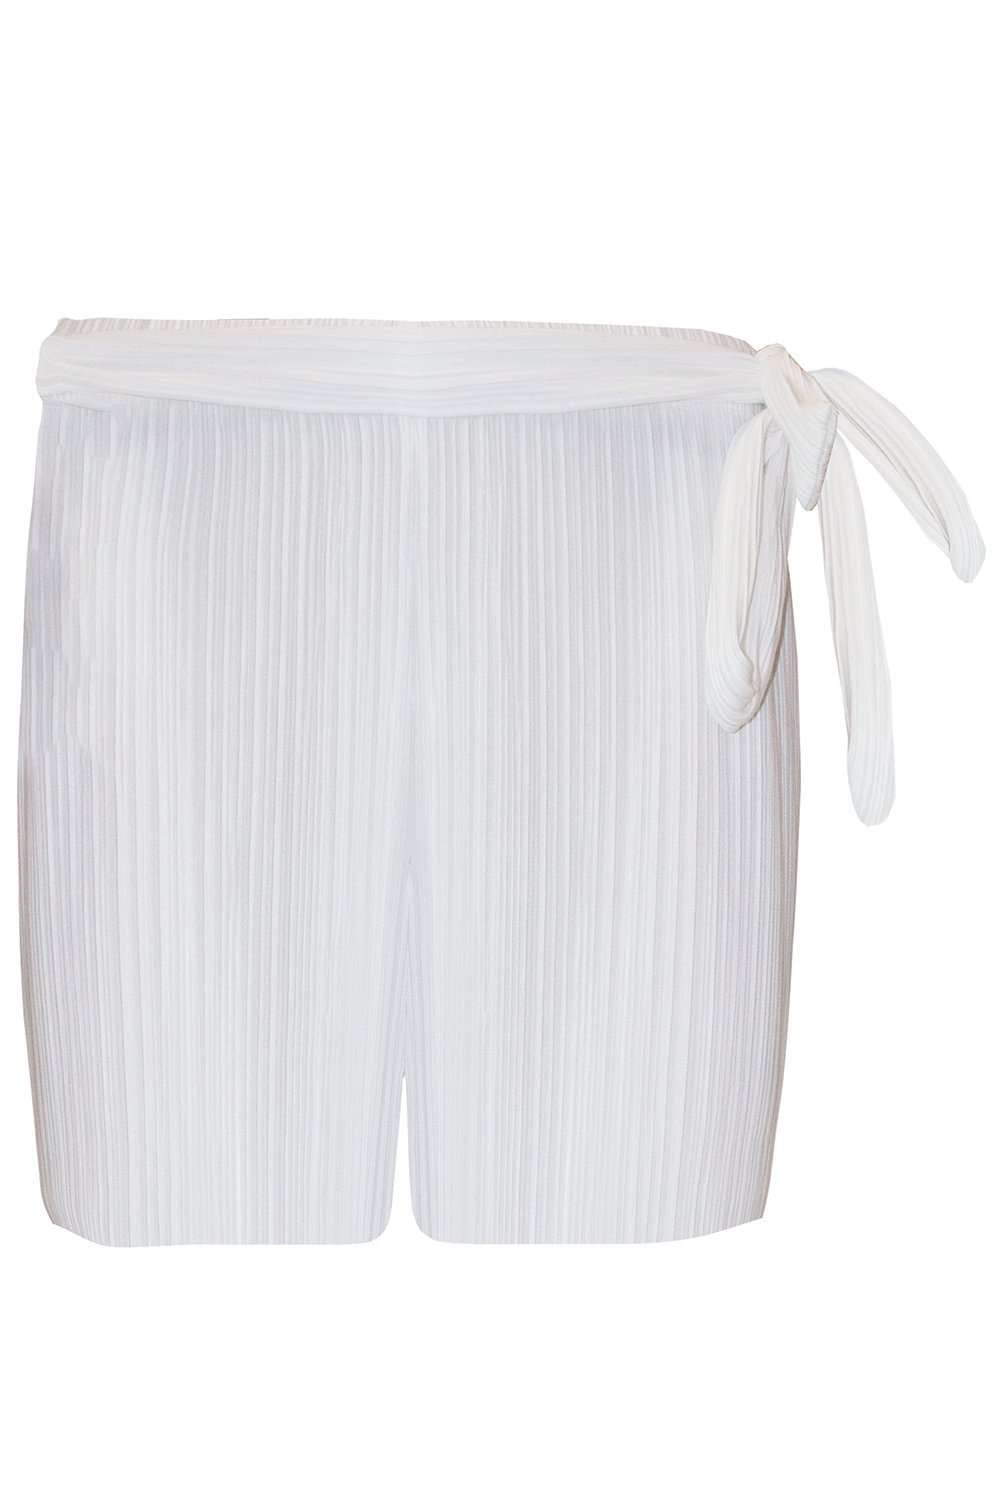 Nikki High Waisted Paper Bag Pleated Shorts - bejealous-com